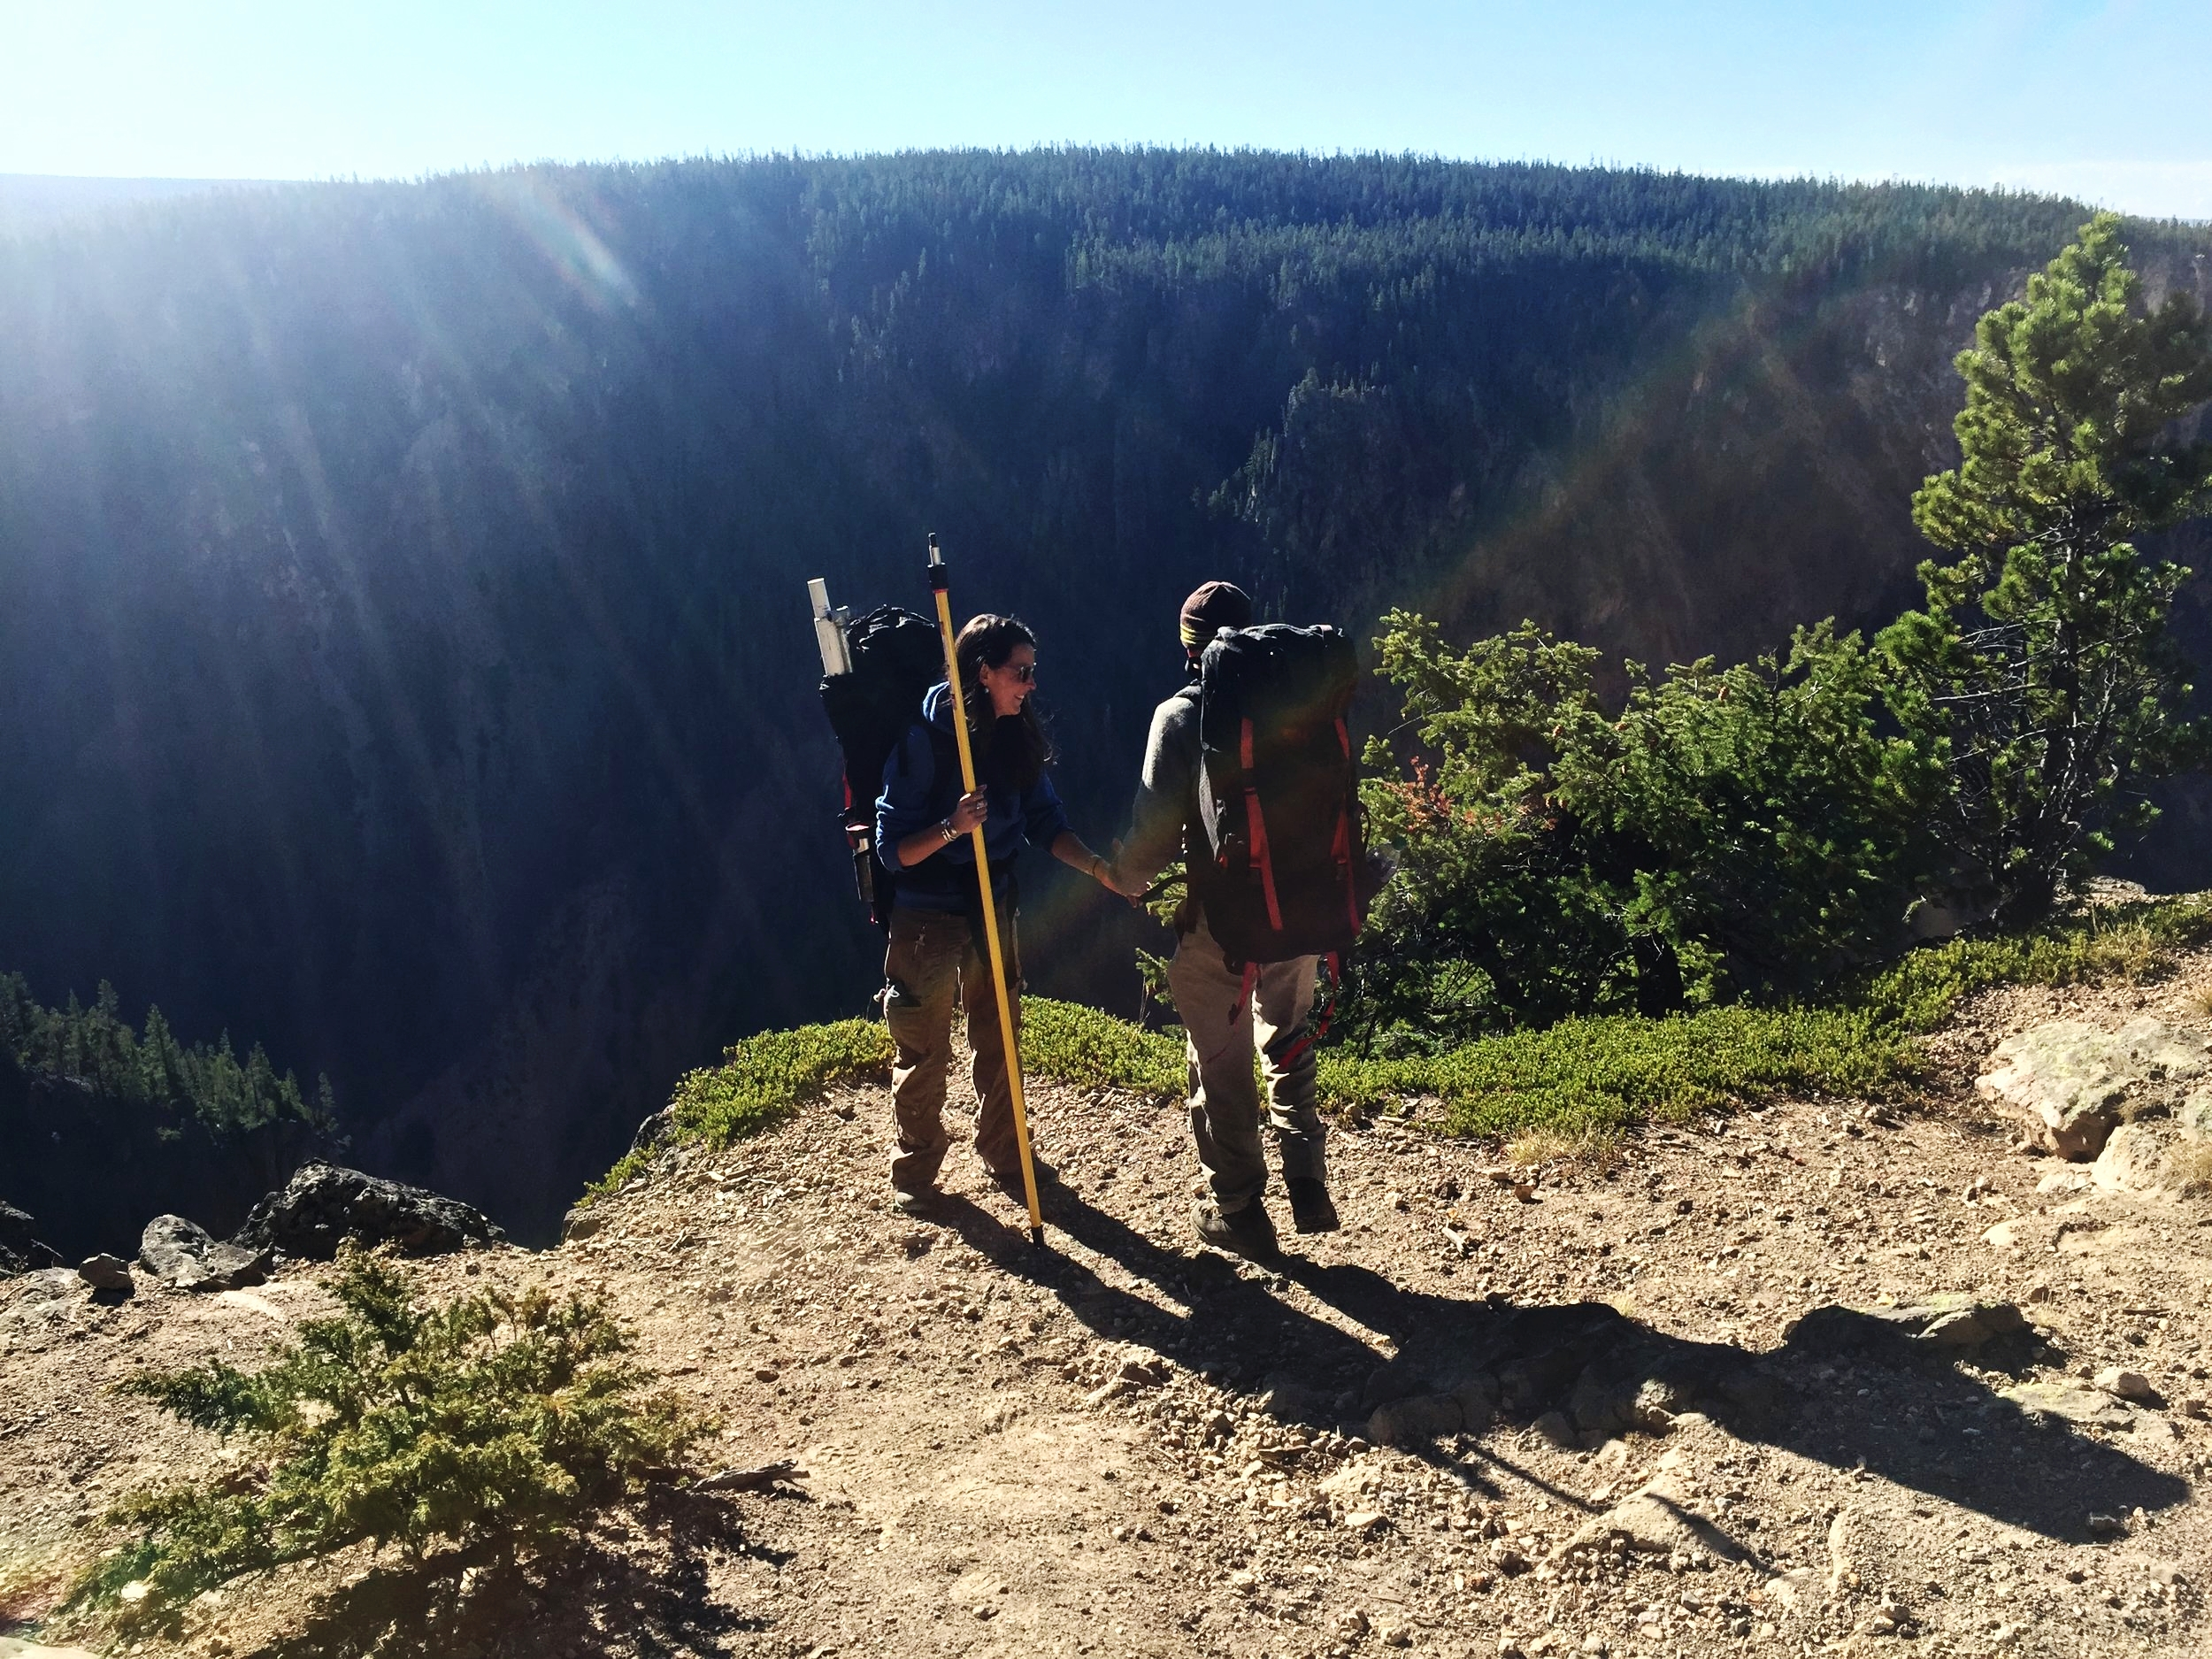 Overlooking the canyon